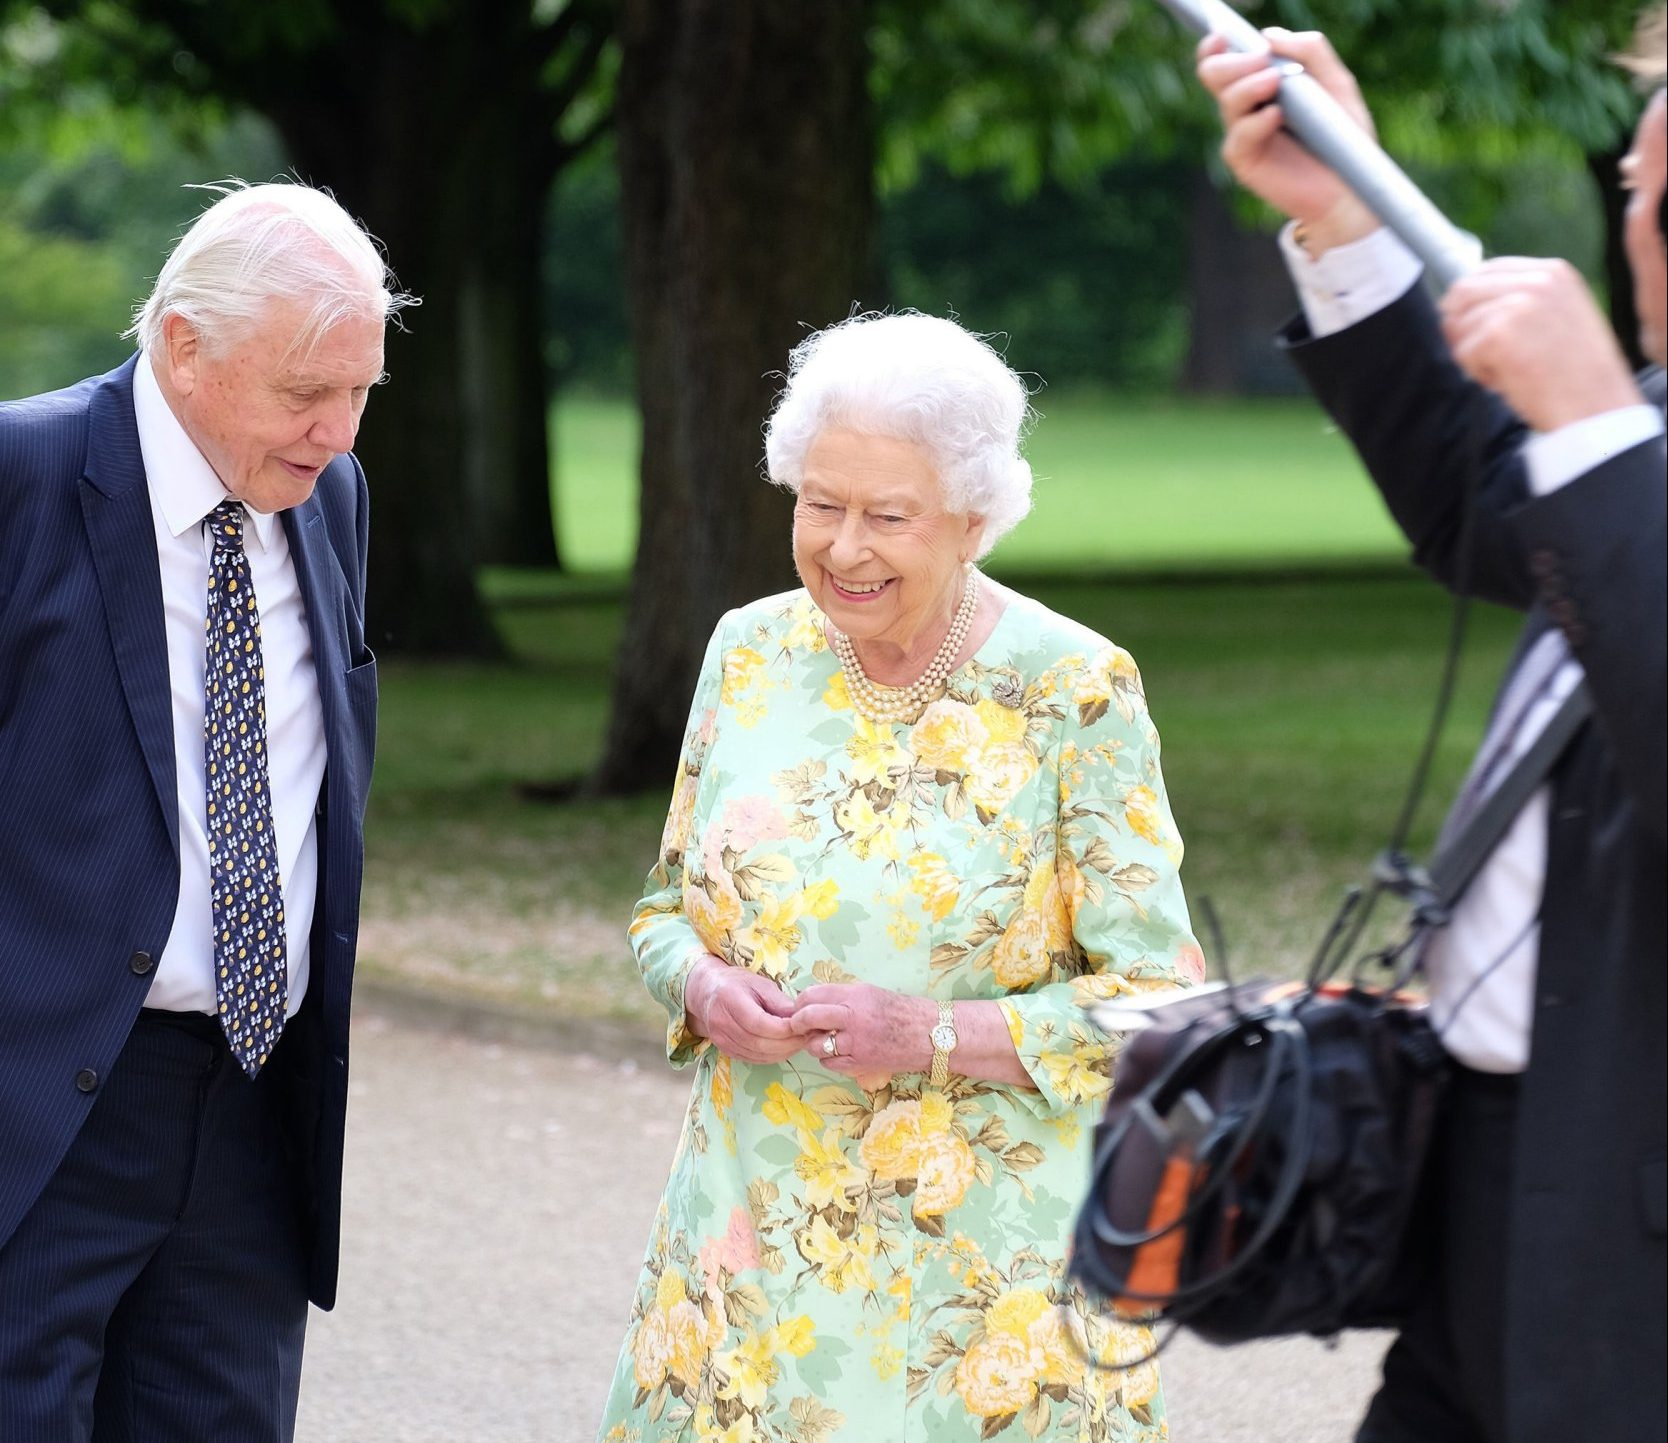 The Queen and David Attenborough will be on TV together